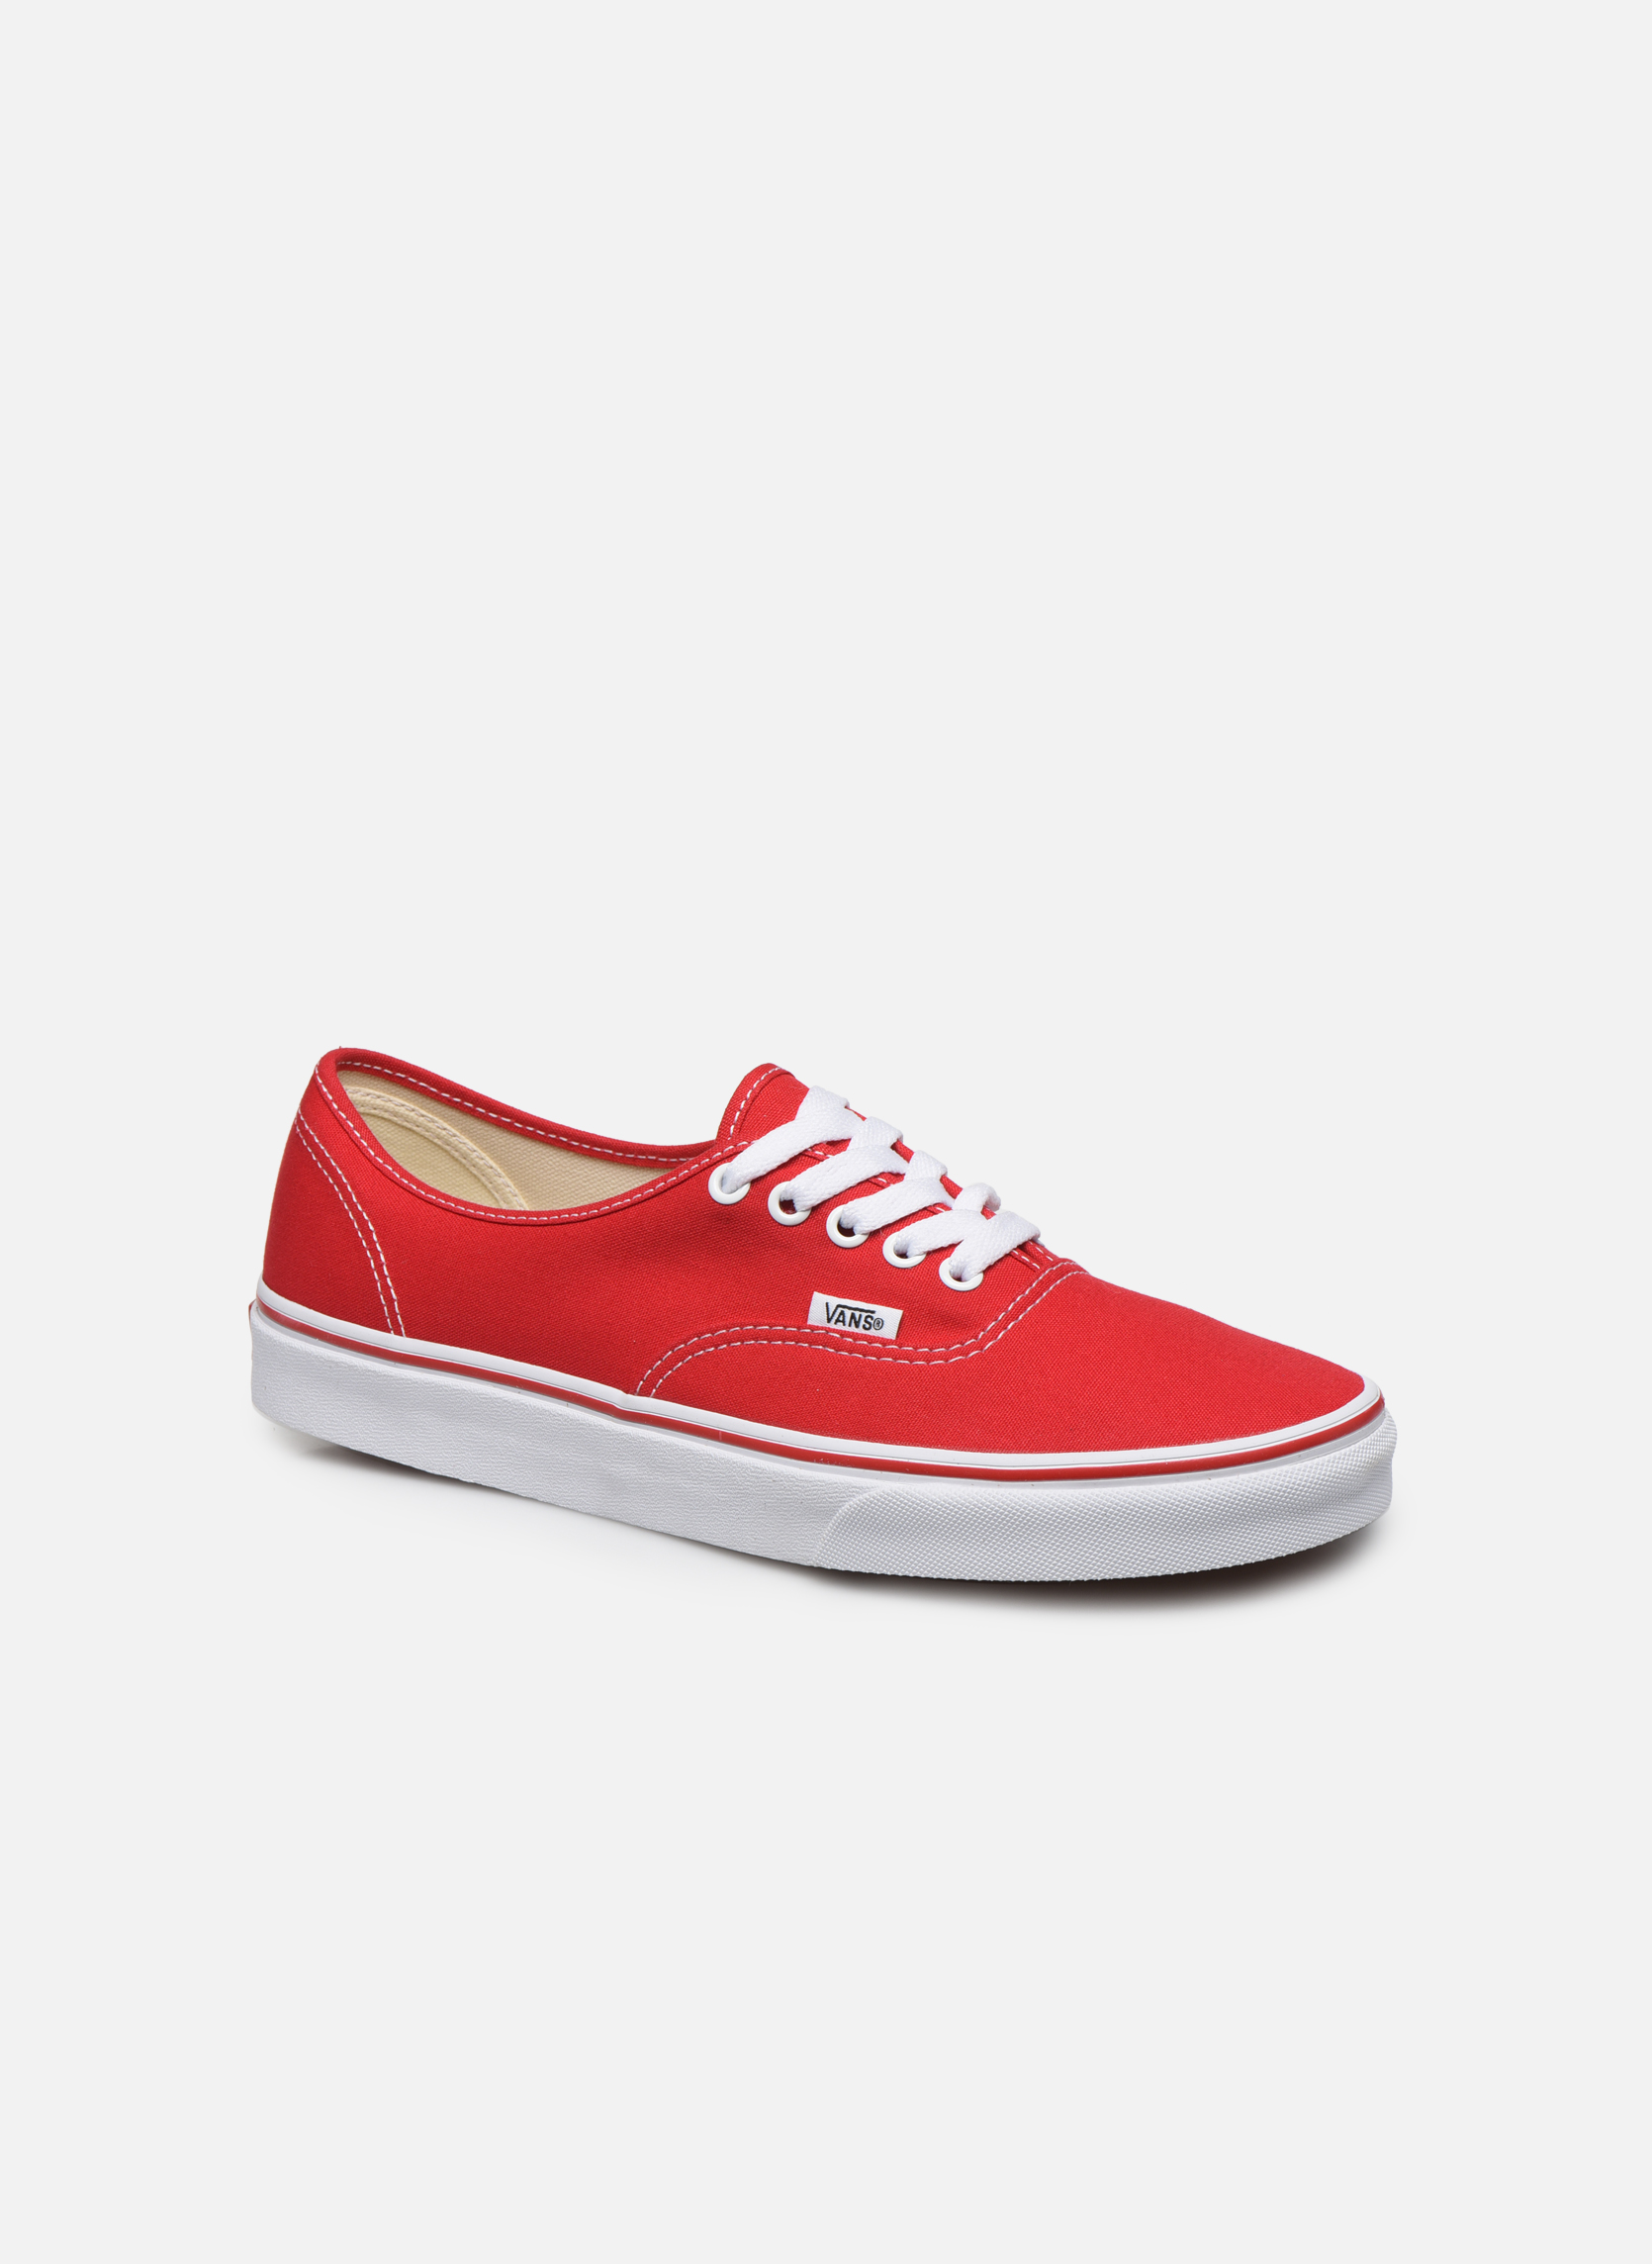 Sneakers Authentic by Vans